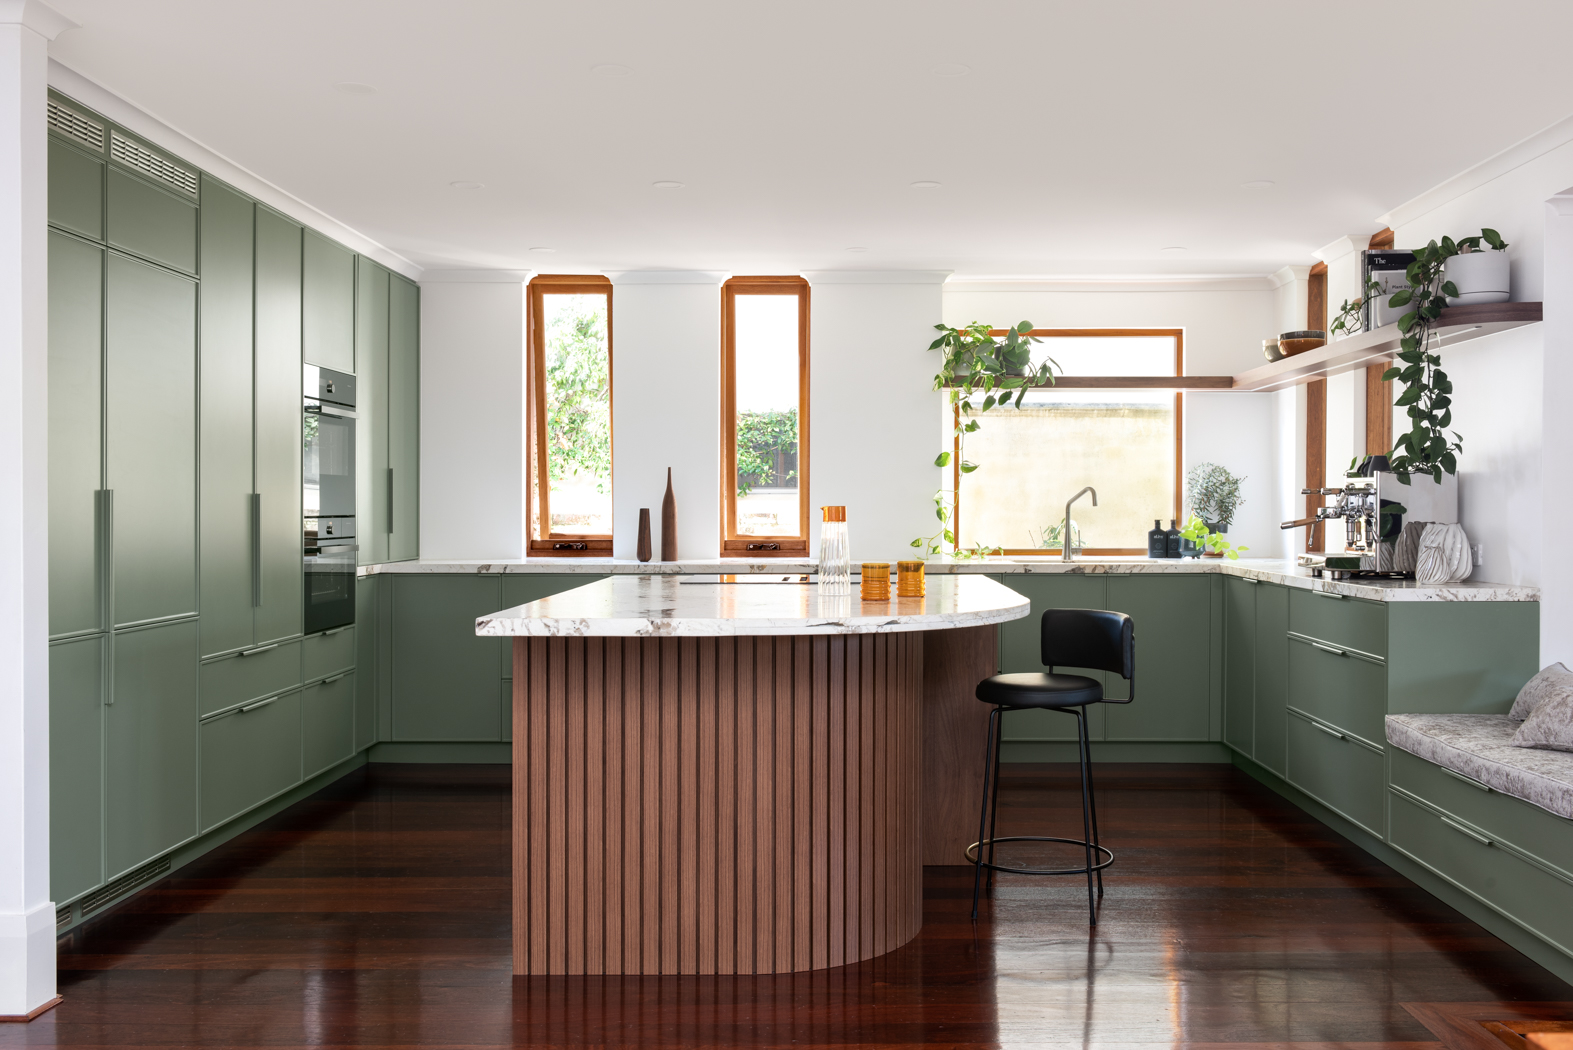 Renovated kitchen with wood floors, fern coloured cabinets and marble accents.